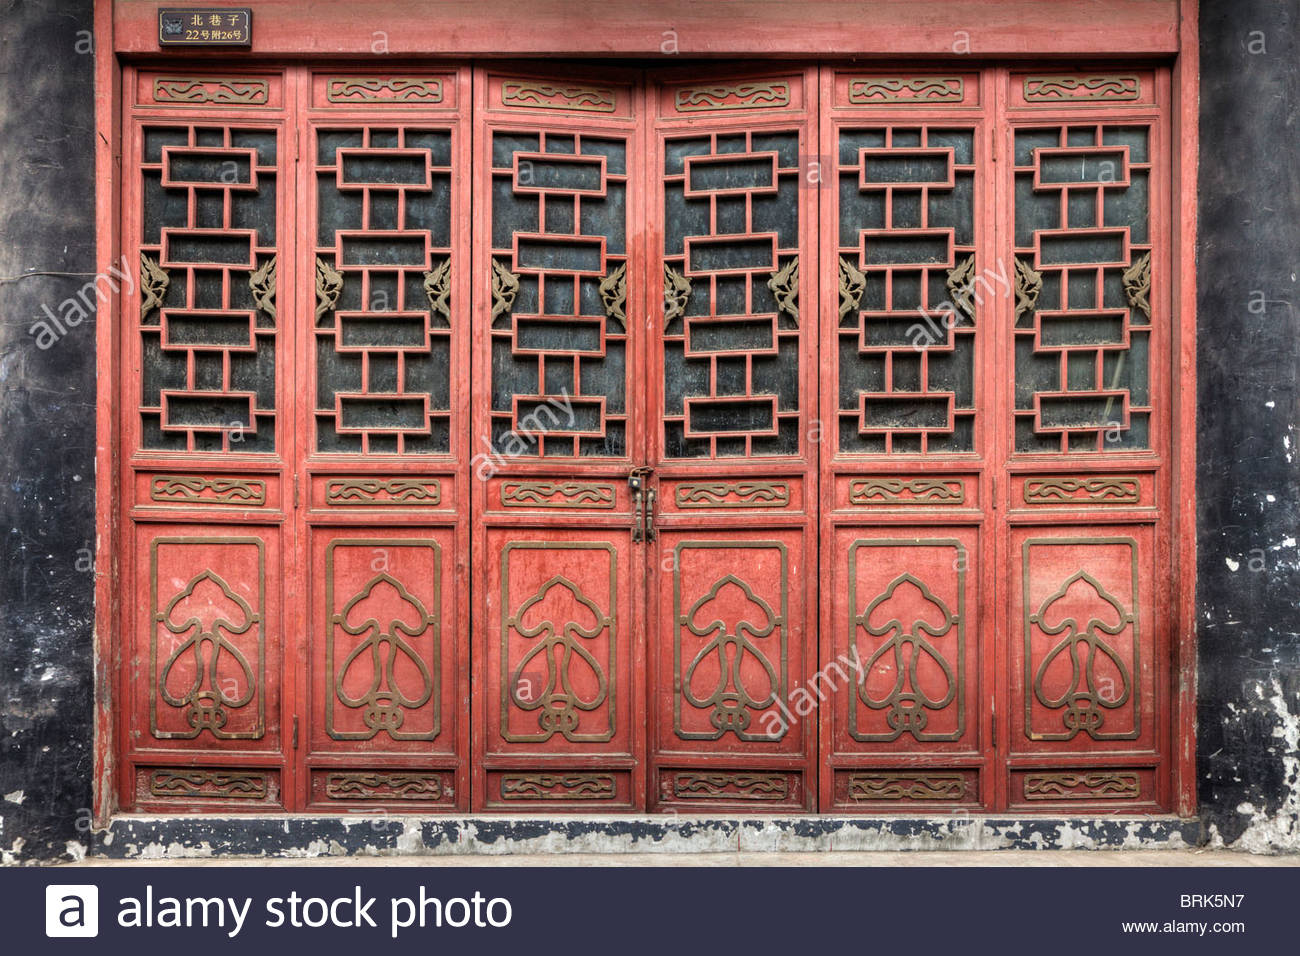 Decorative antique wood carved doors on Jinli Old Street. - Stock Image